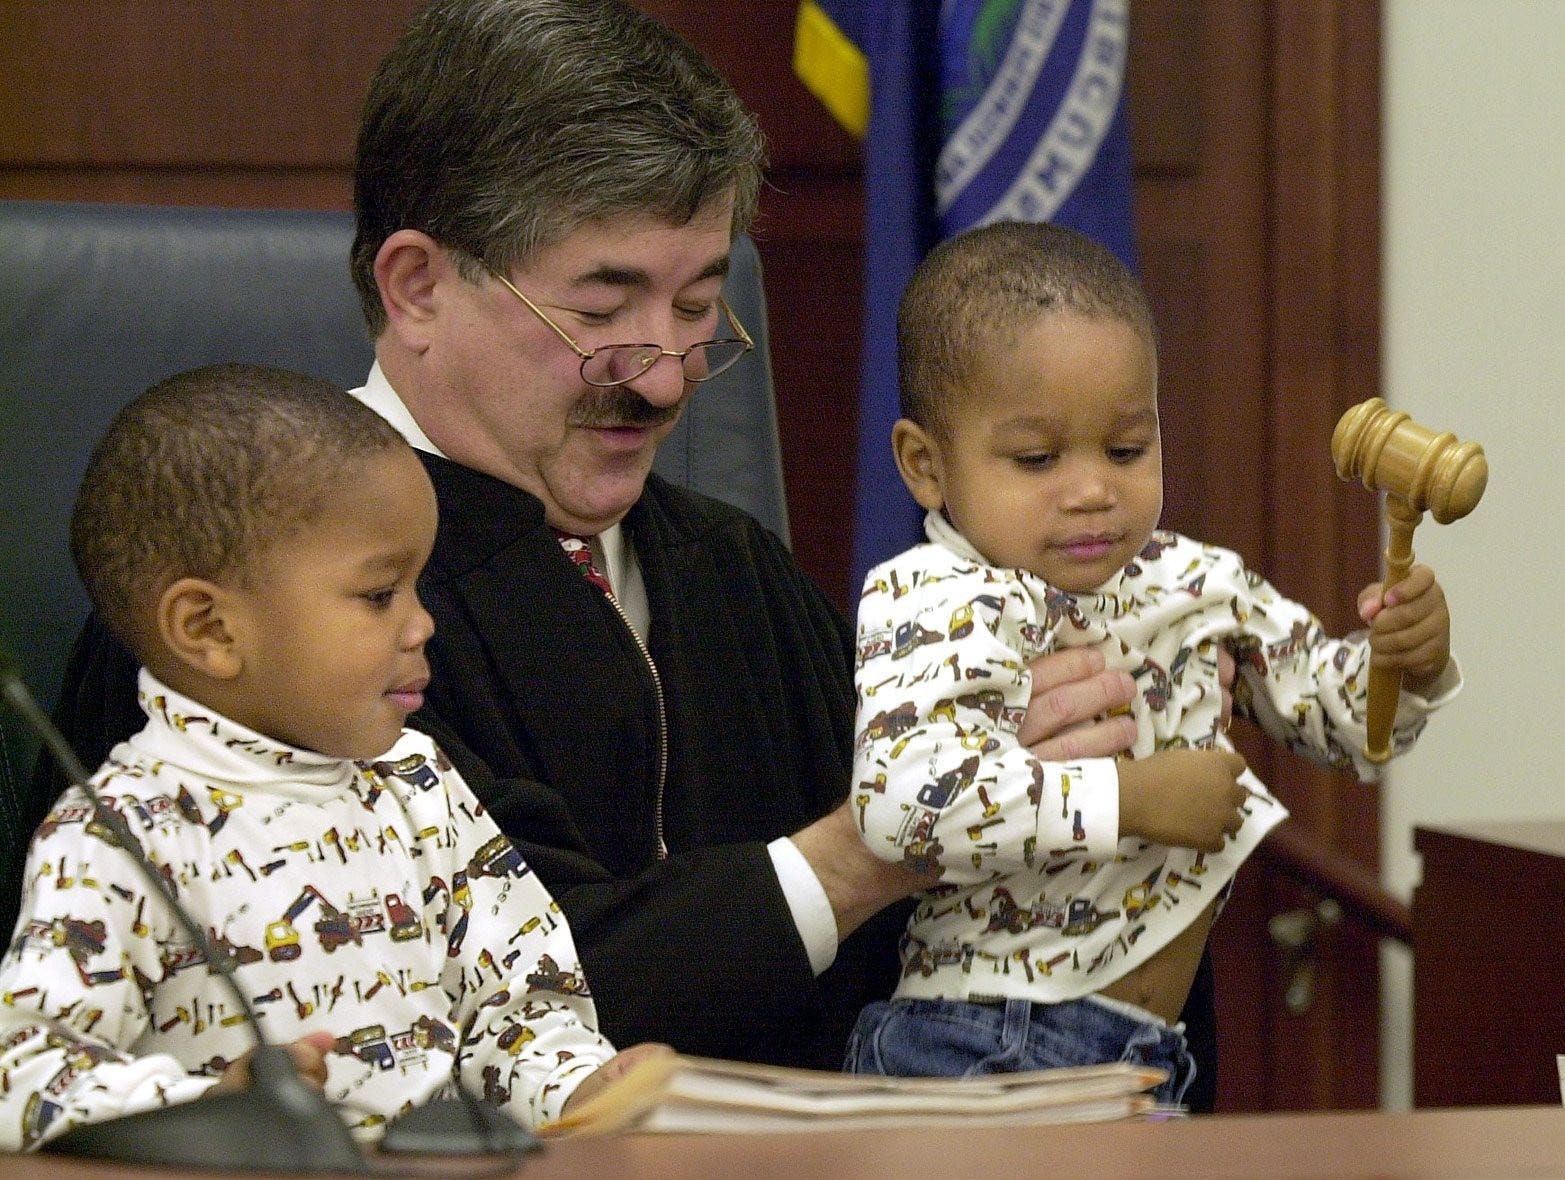 Brothers George Duane Curtis, 3, left, and Tyre Lee Curtis, 2, right, sit on Ingham County Family Court Judge George Economy's lap and bang the gavel  Dec. 19, 2001 as Economy finalizes their adoption by mom and dad Darlene and Duane Curtis in his traditional Christmas season adoption proceedings.